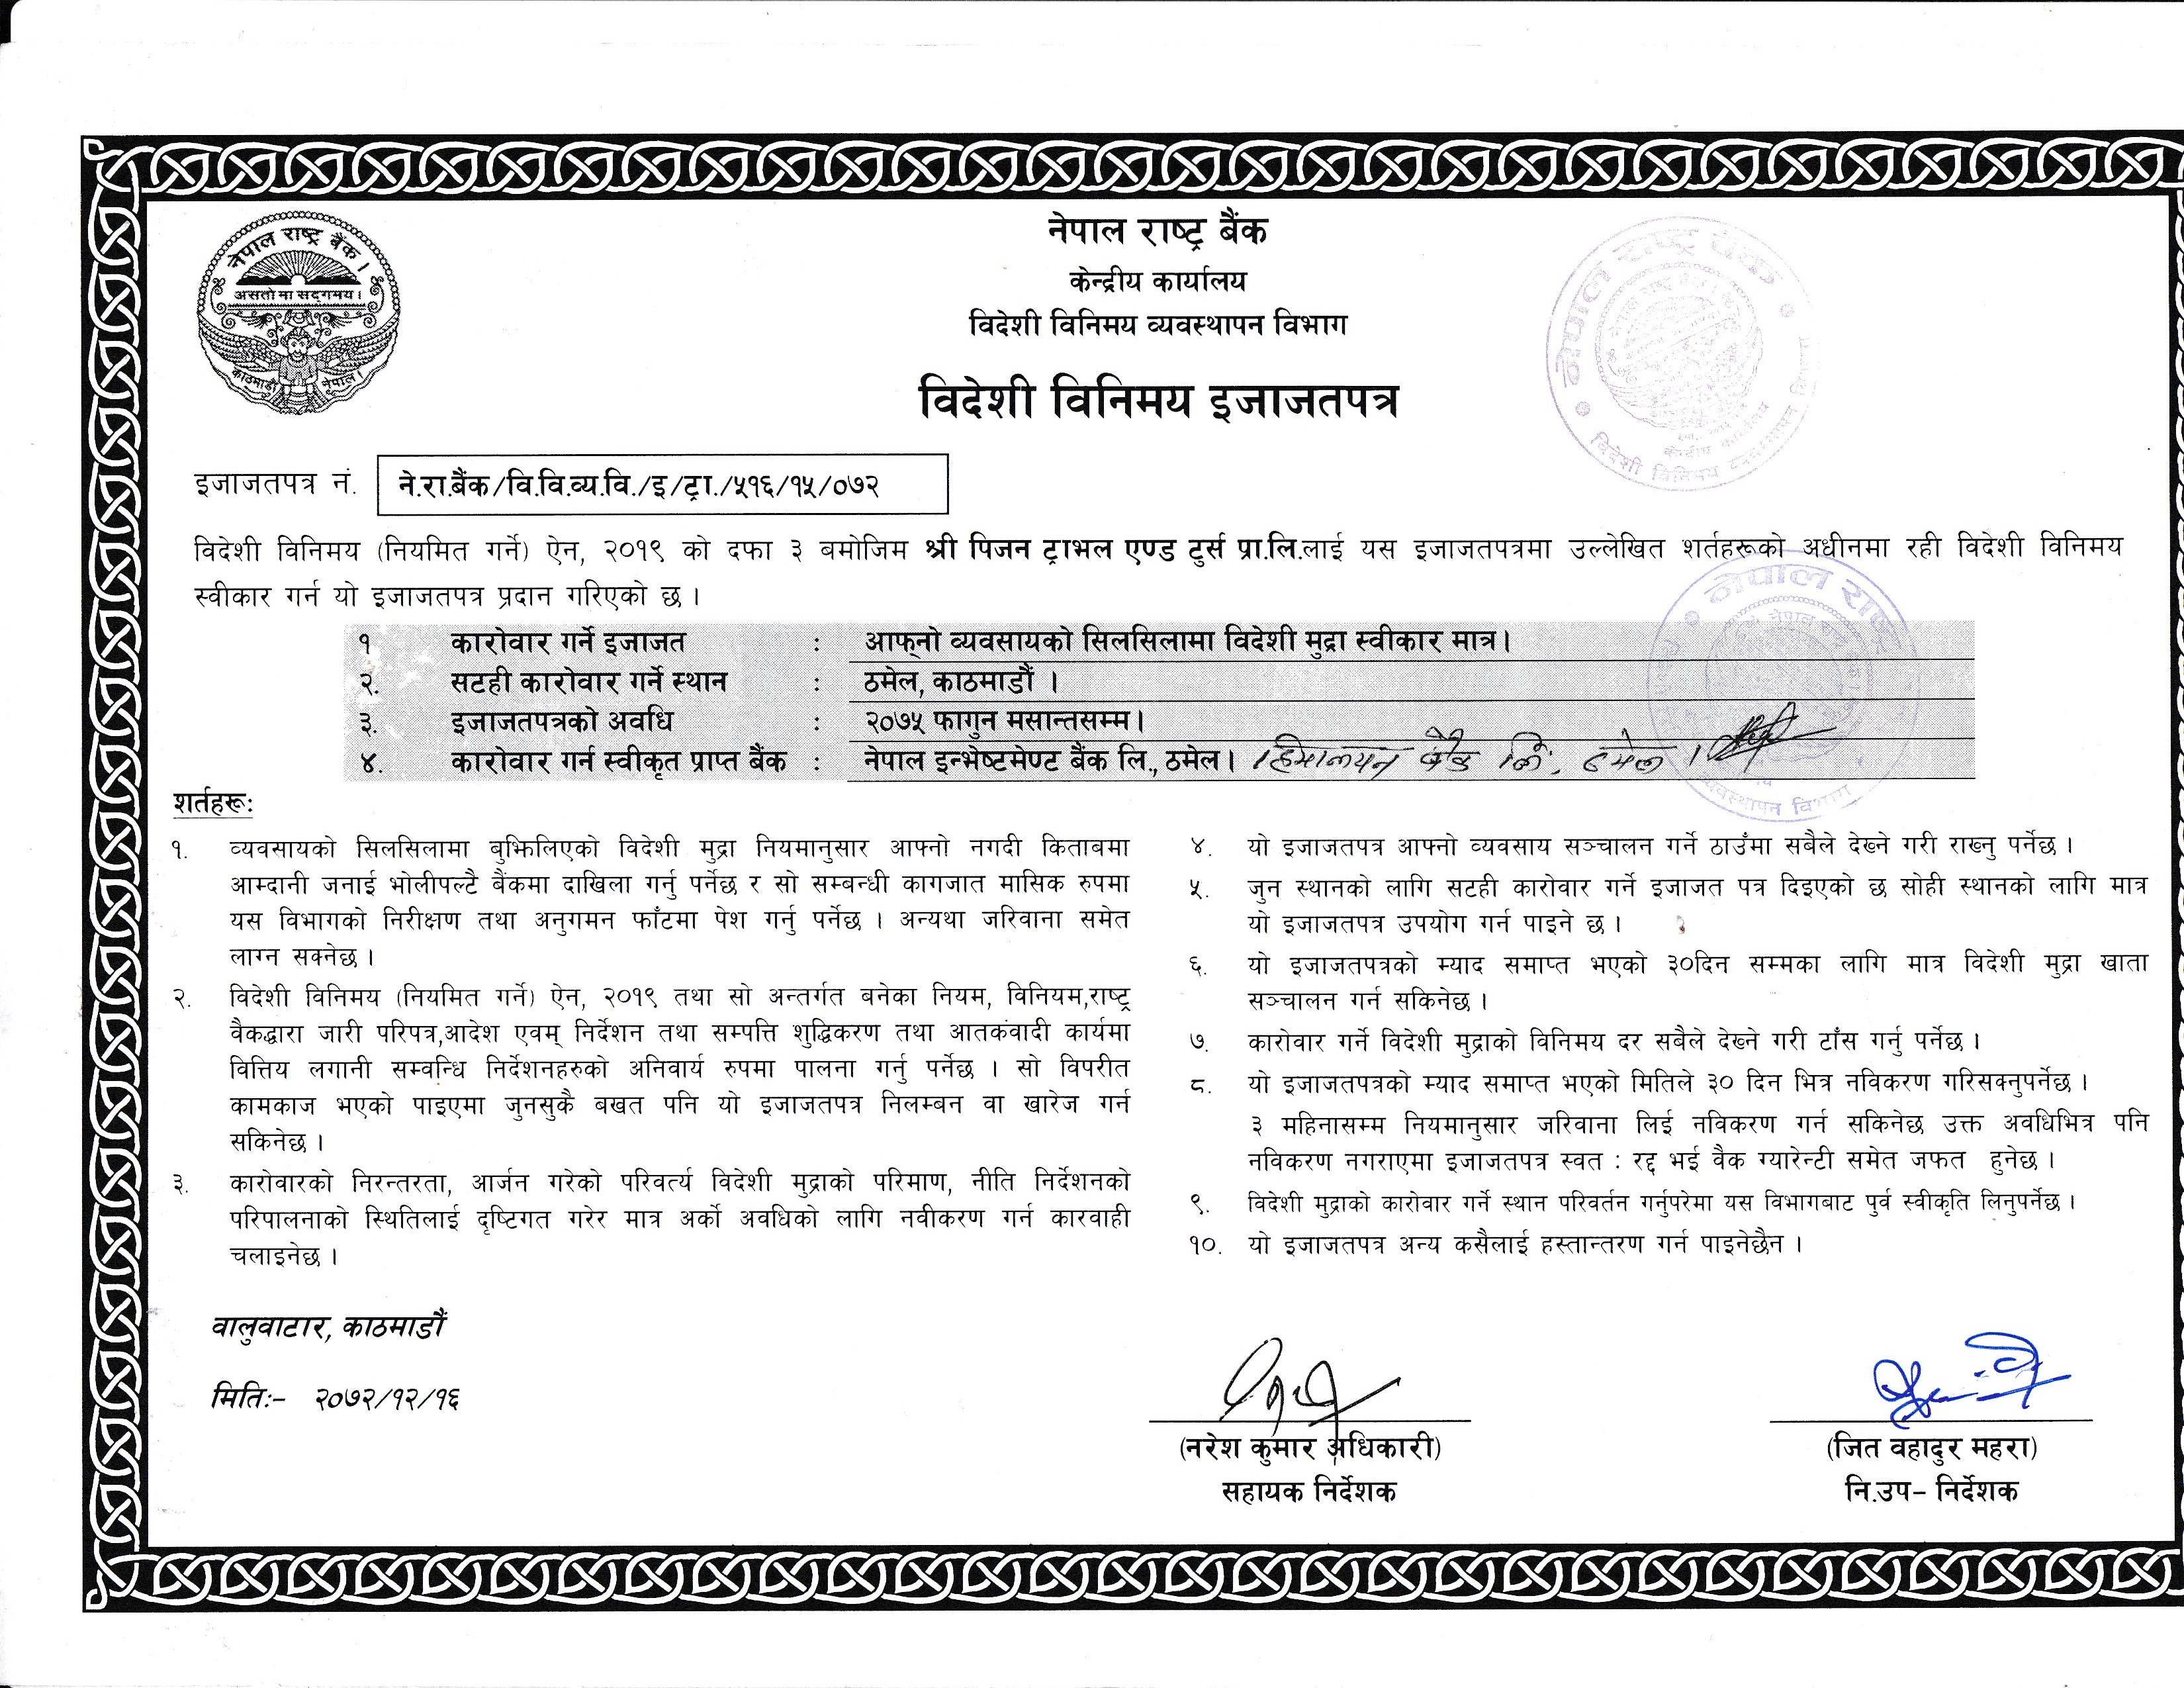 Certificate from central bank of Nepal(Nepal Rastra Bank) for foreign currency transaction